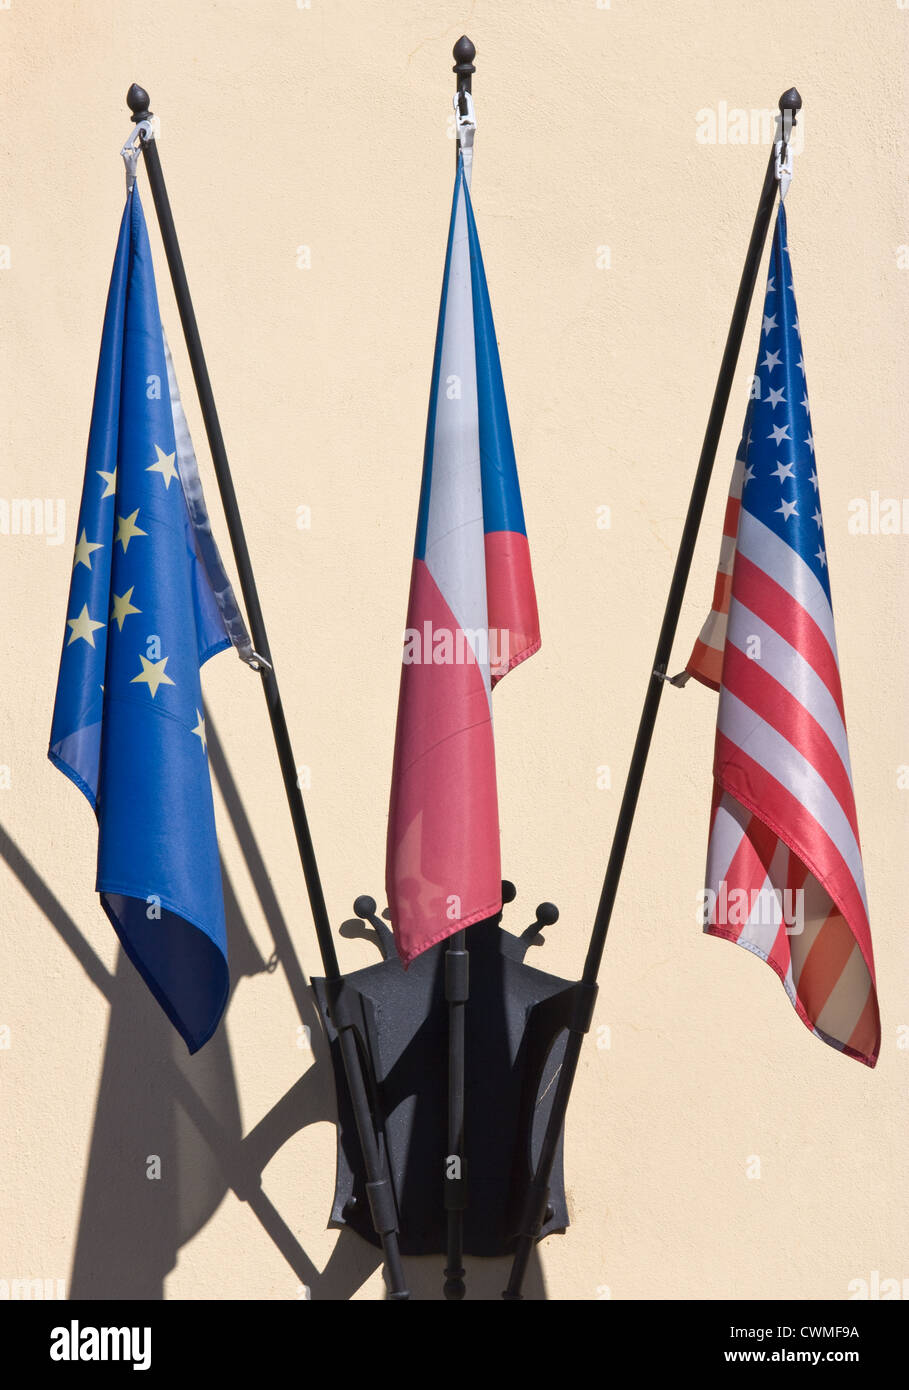 Flags of Czech Republic, USA and European Union - Stock Image